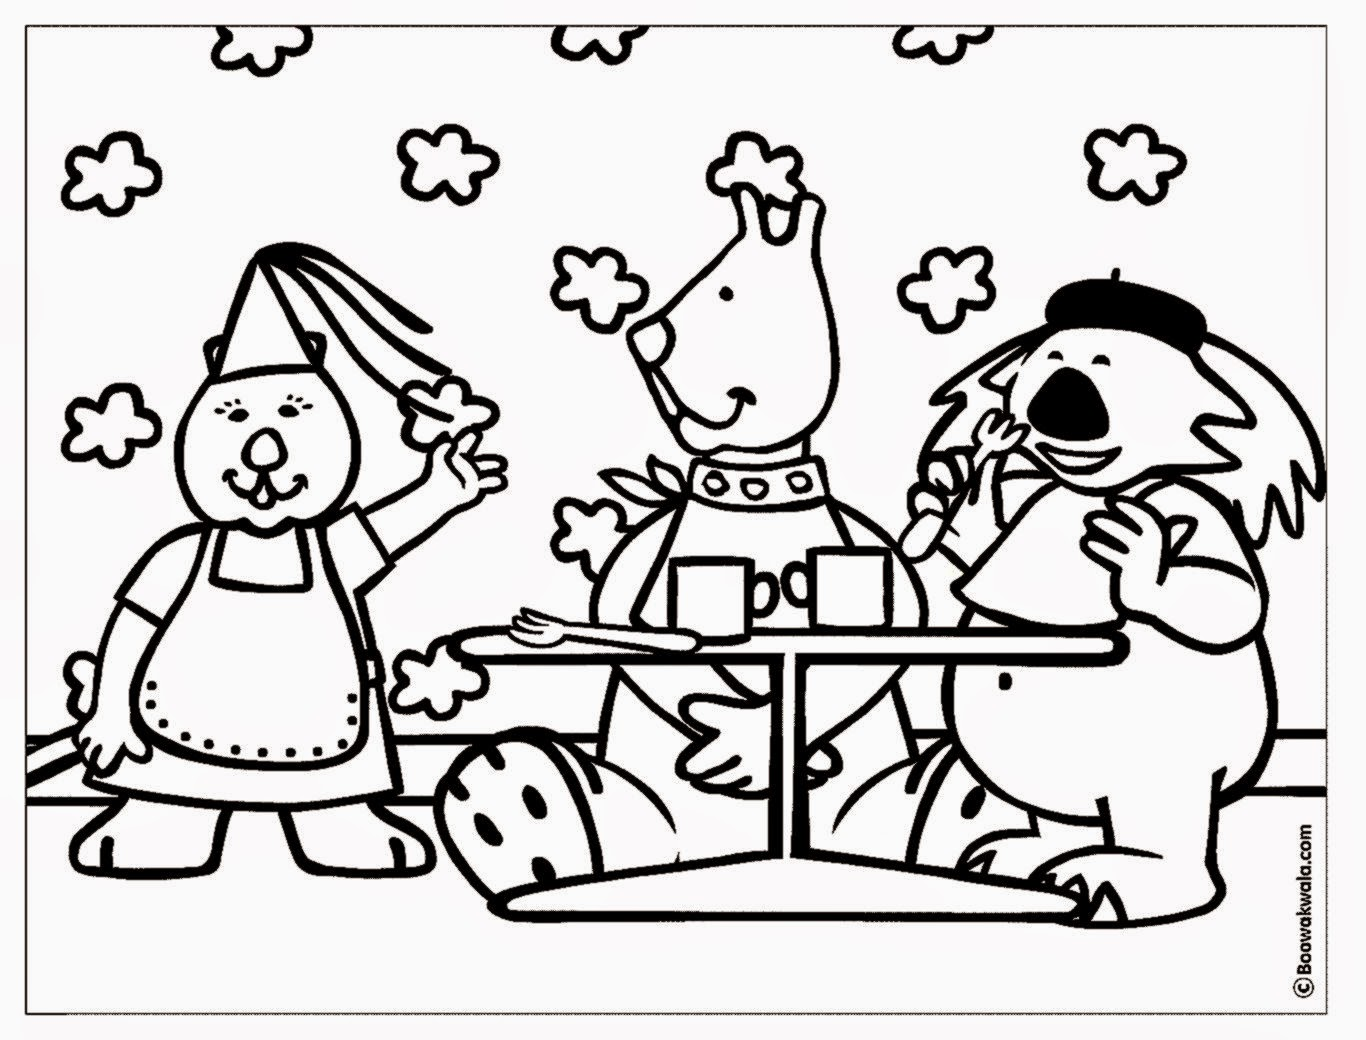 Coloring Pages For Restaurants : Restaurant coloring sheets free sheet